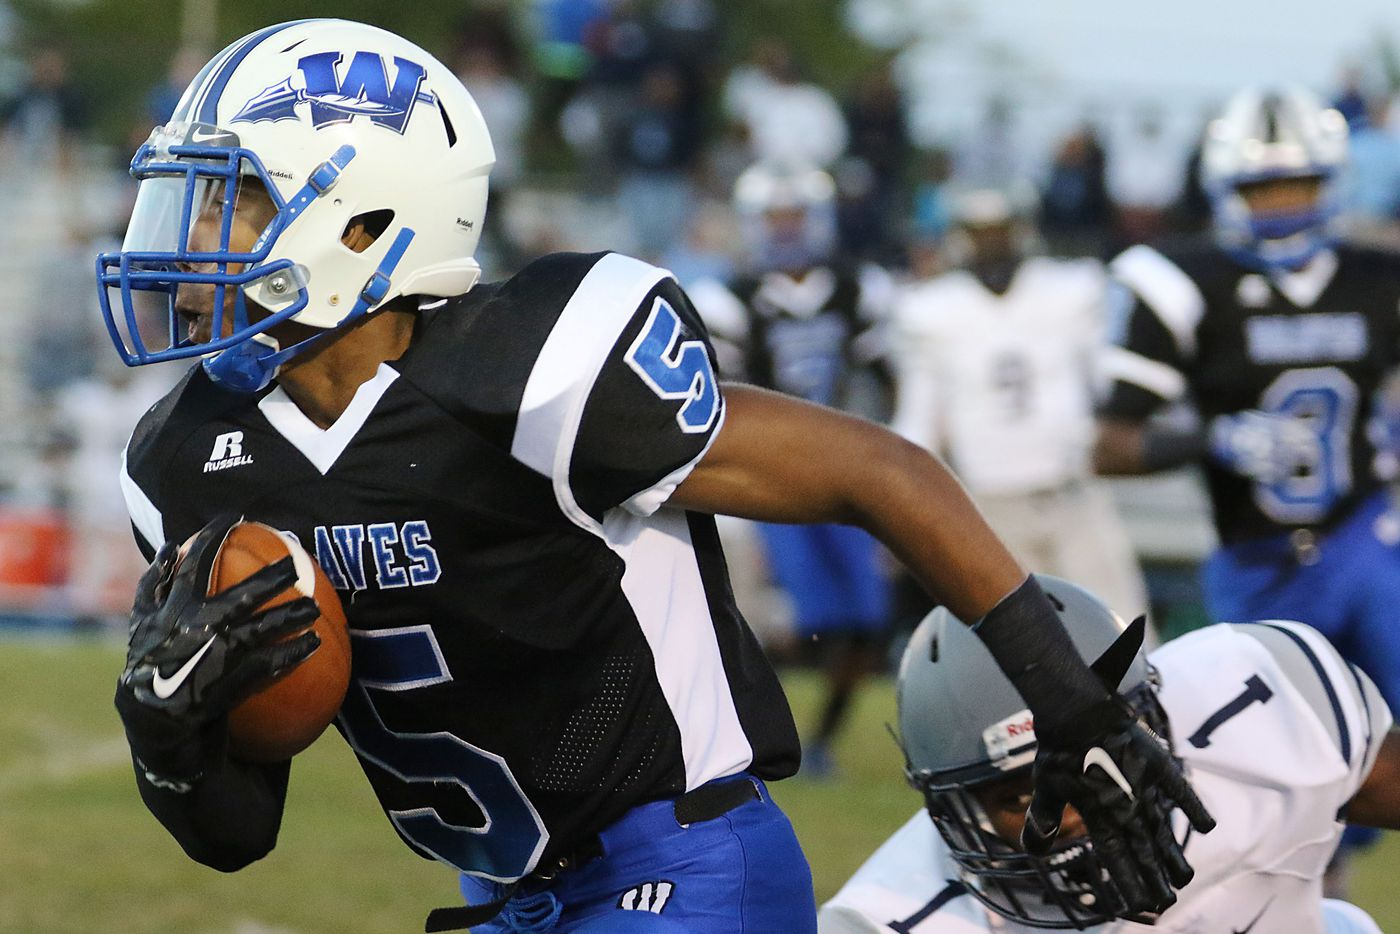 Friday's S.J. football roundup: Williamstown survives a scare from Lenape